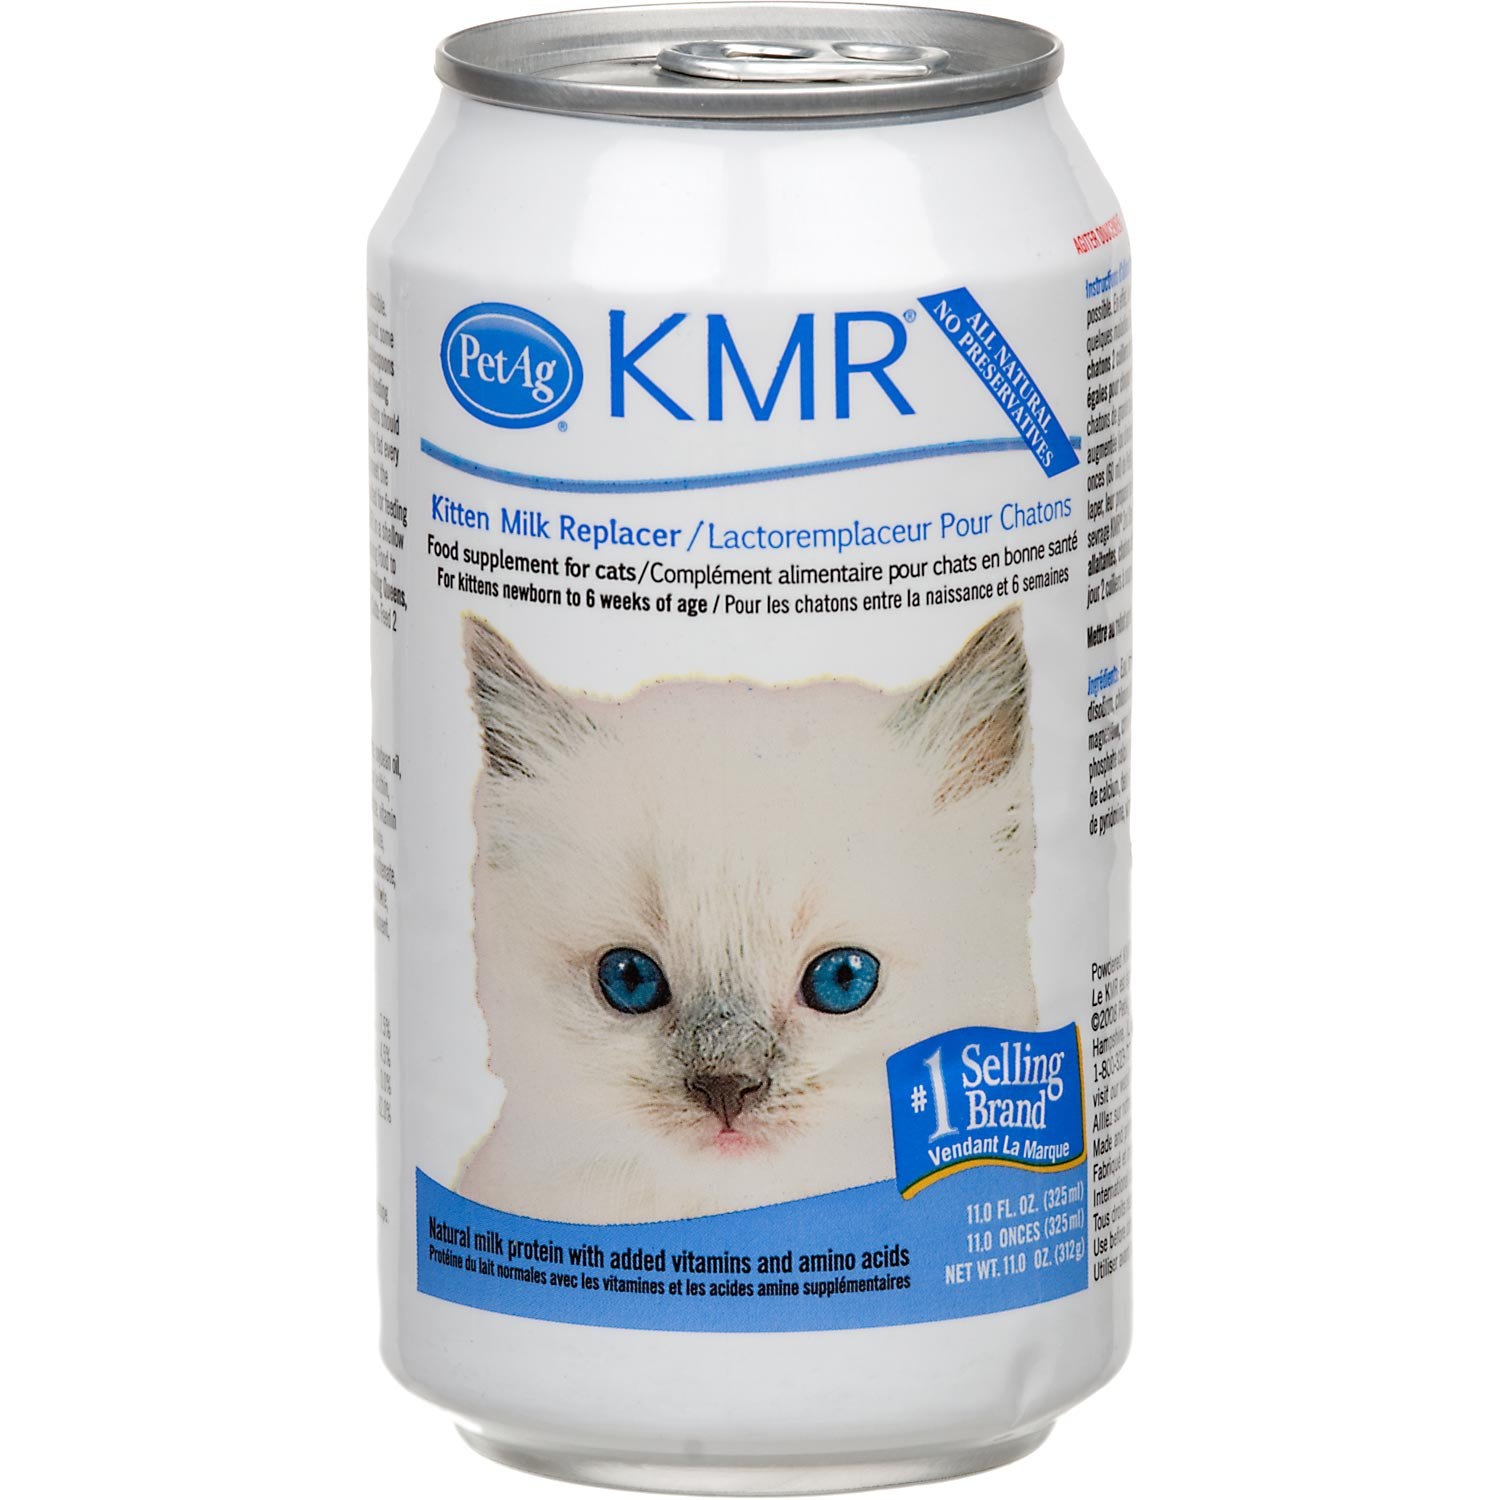 PetAg KMR Milk Replacer Food Supplements for Kittens & Small